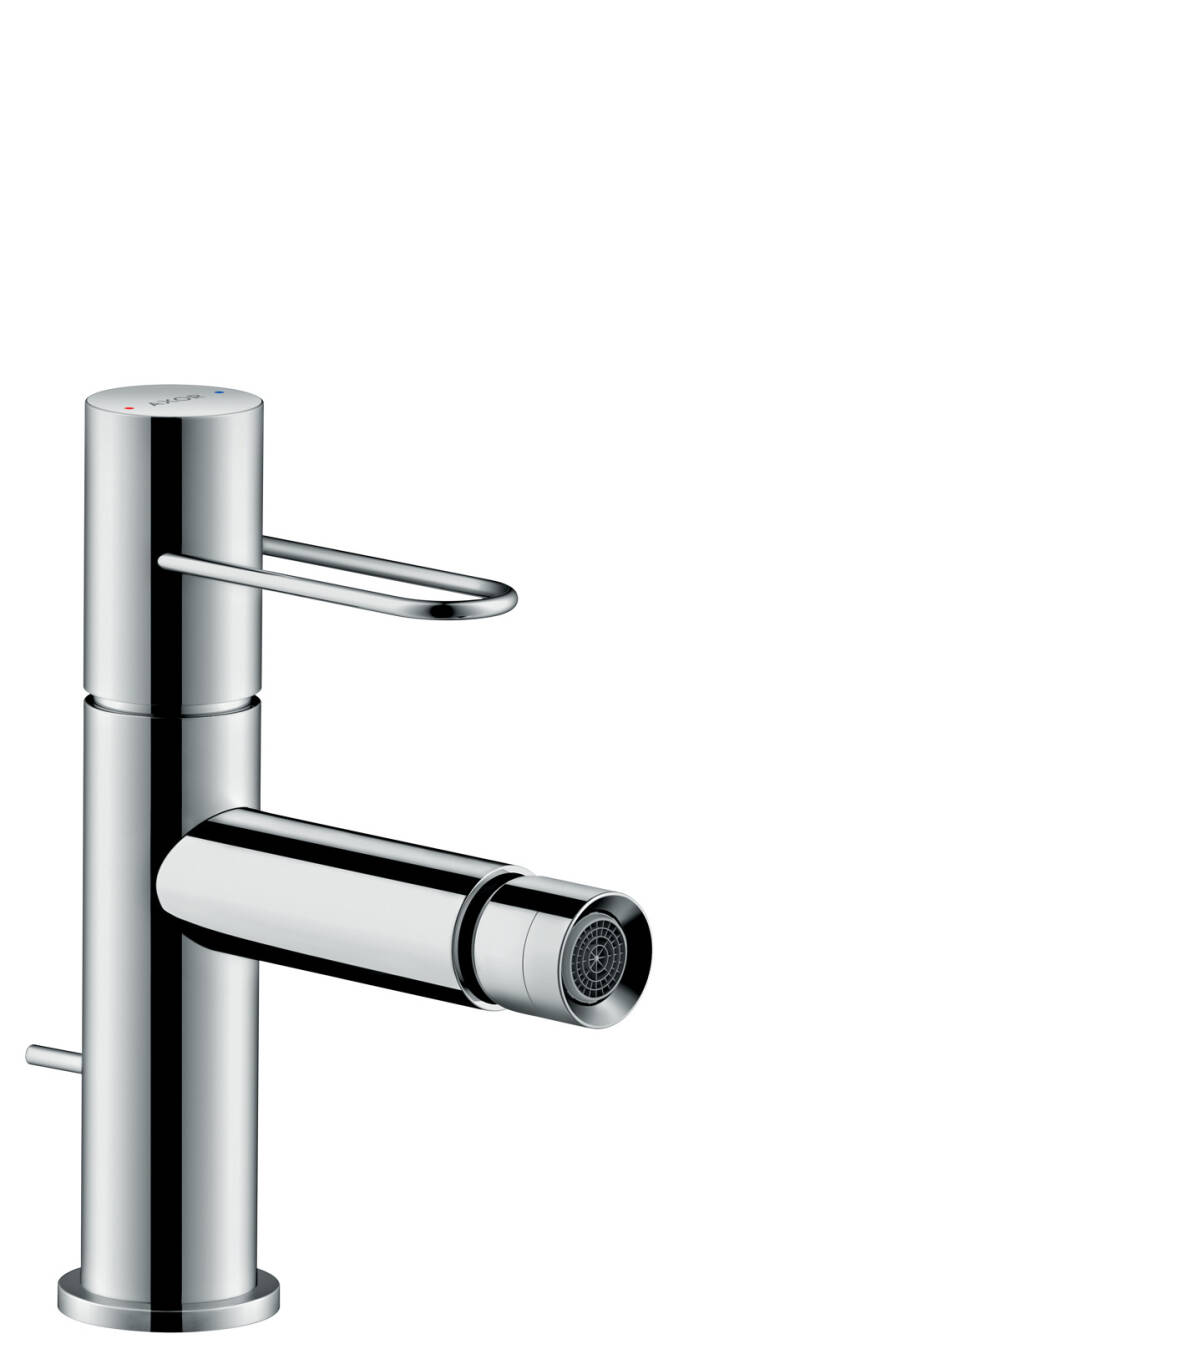 Single lever bidet mixer with loop handle and pop-up waste set, Chrome, 38211000